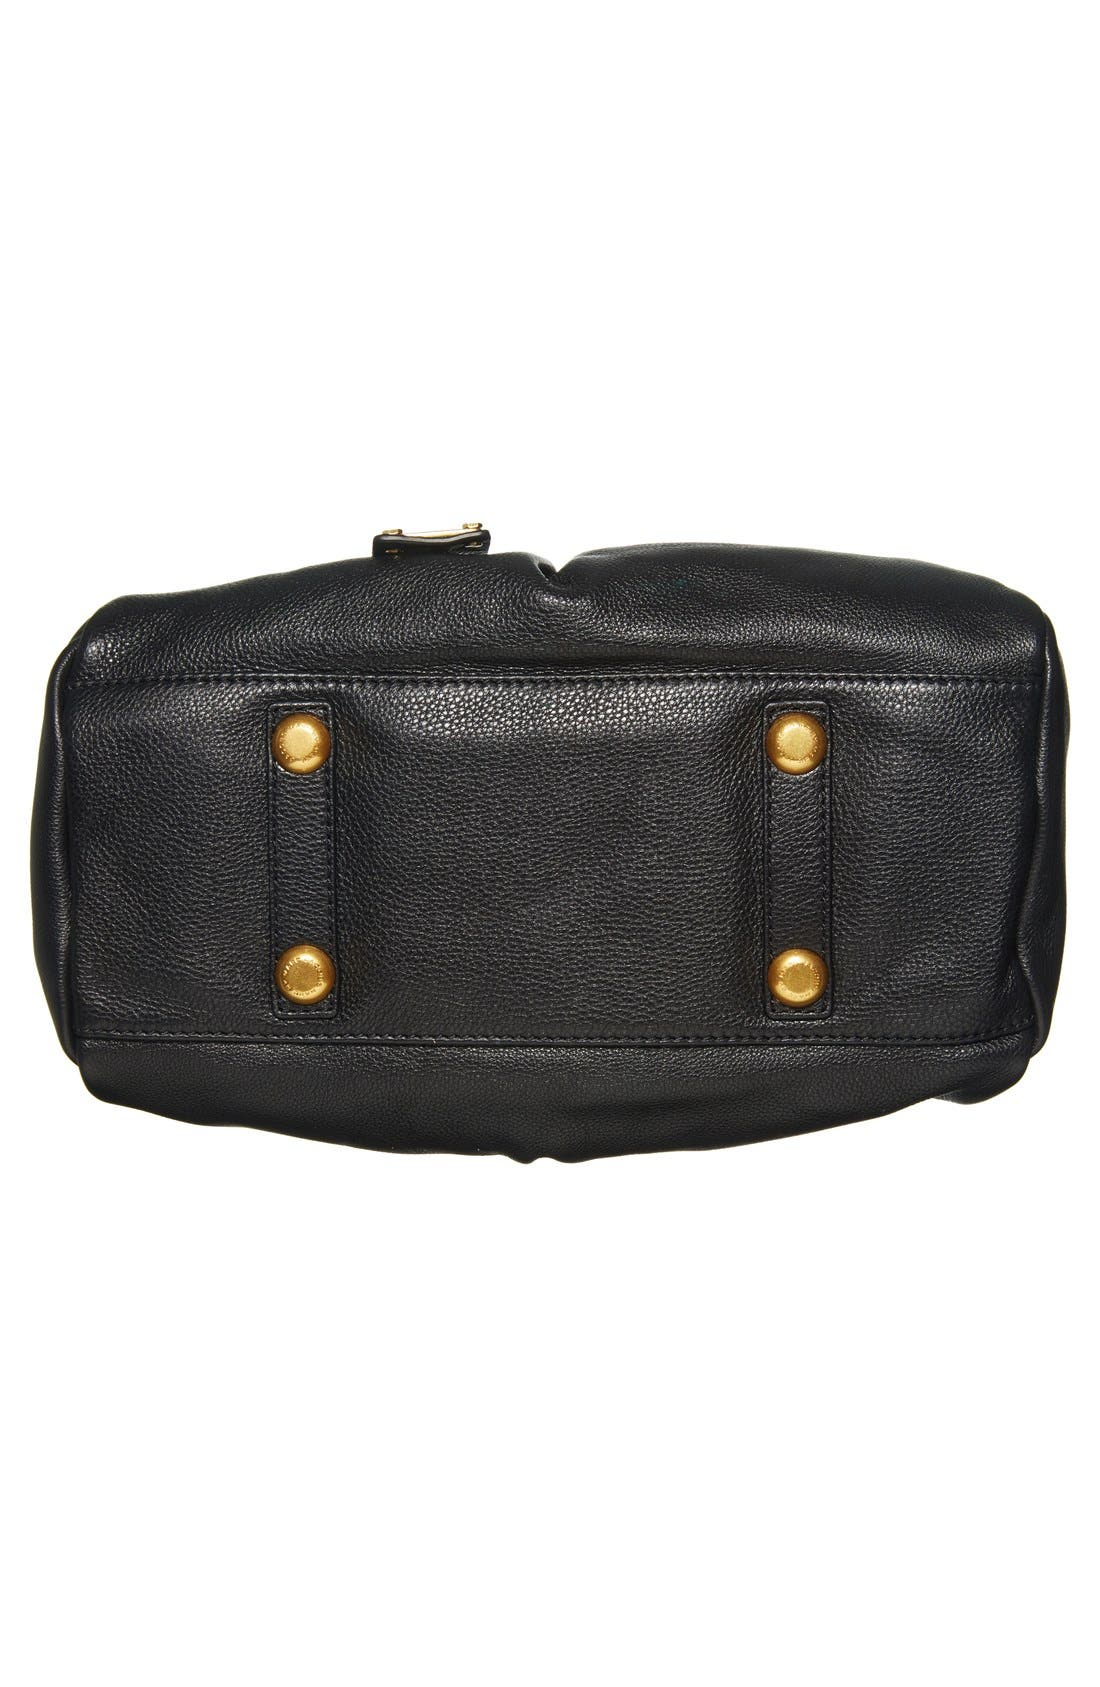 MARC BY MARC JACOBS 'Classic Q - Baby Groovee' Leather Satchel,                             Alternate thumbnail 4, color,                             002